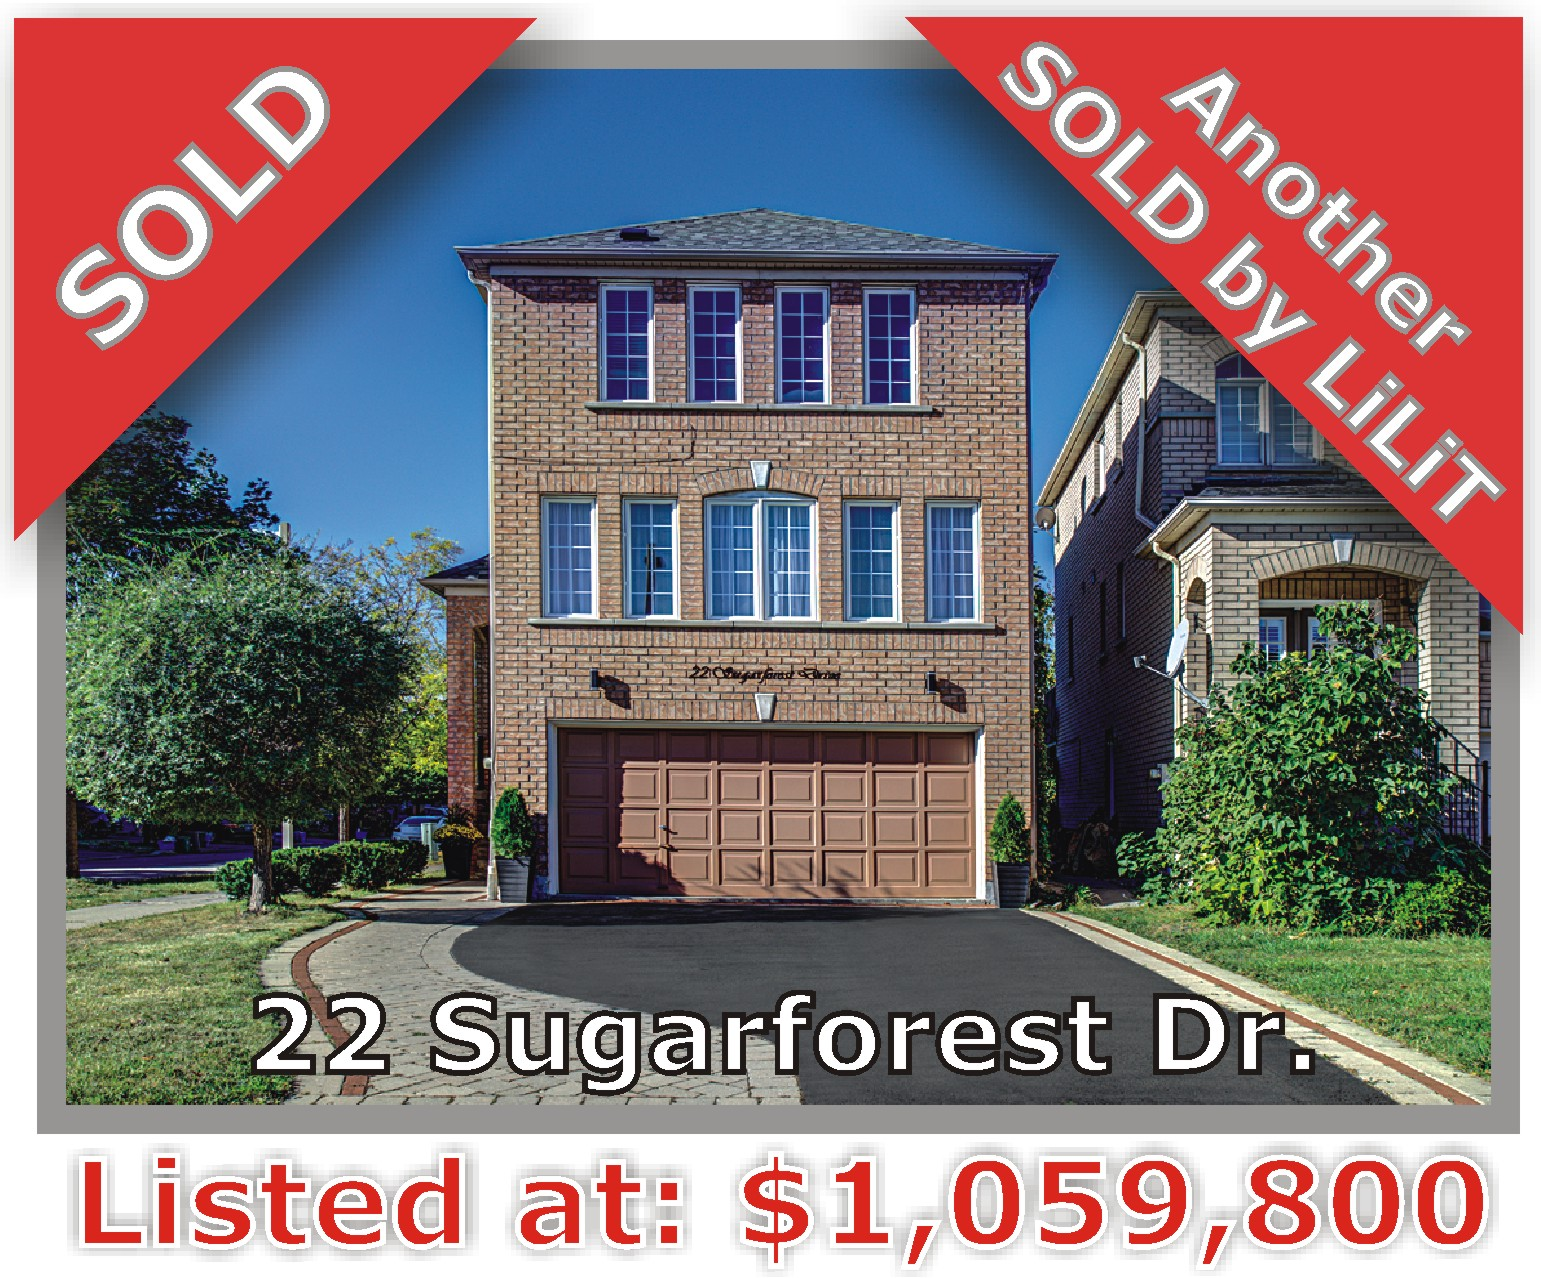 Main Photo: 22 Sugarforest Dr in Vaughan: Patterson Freehold for sale